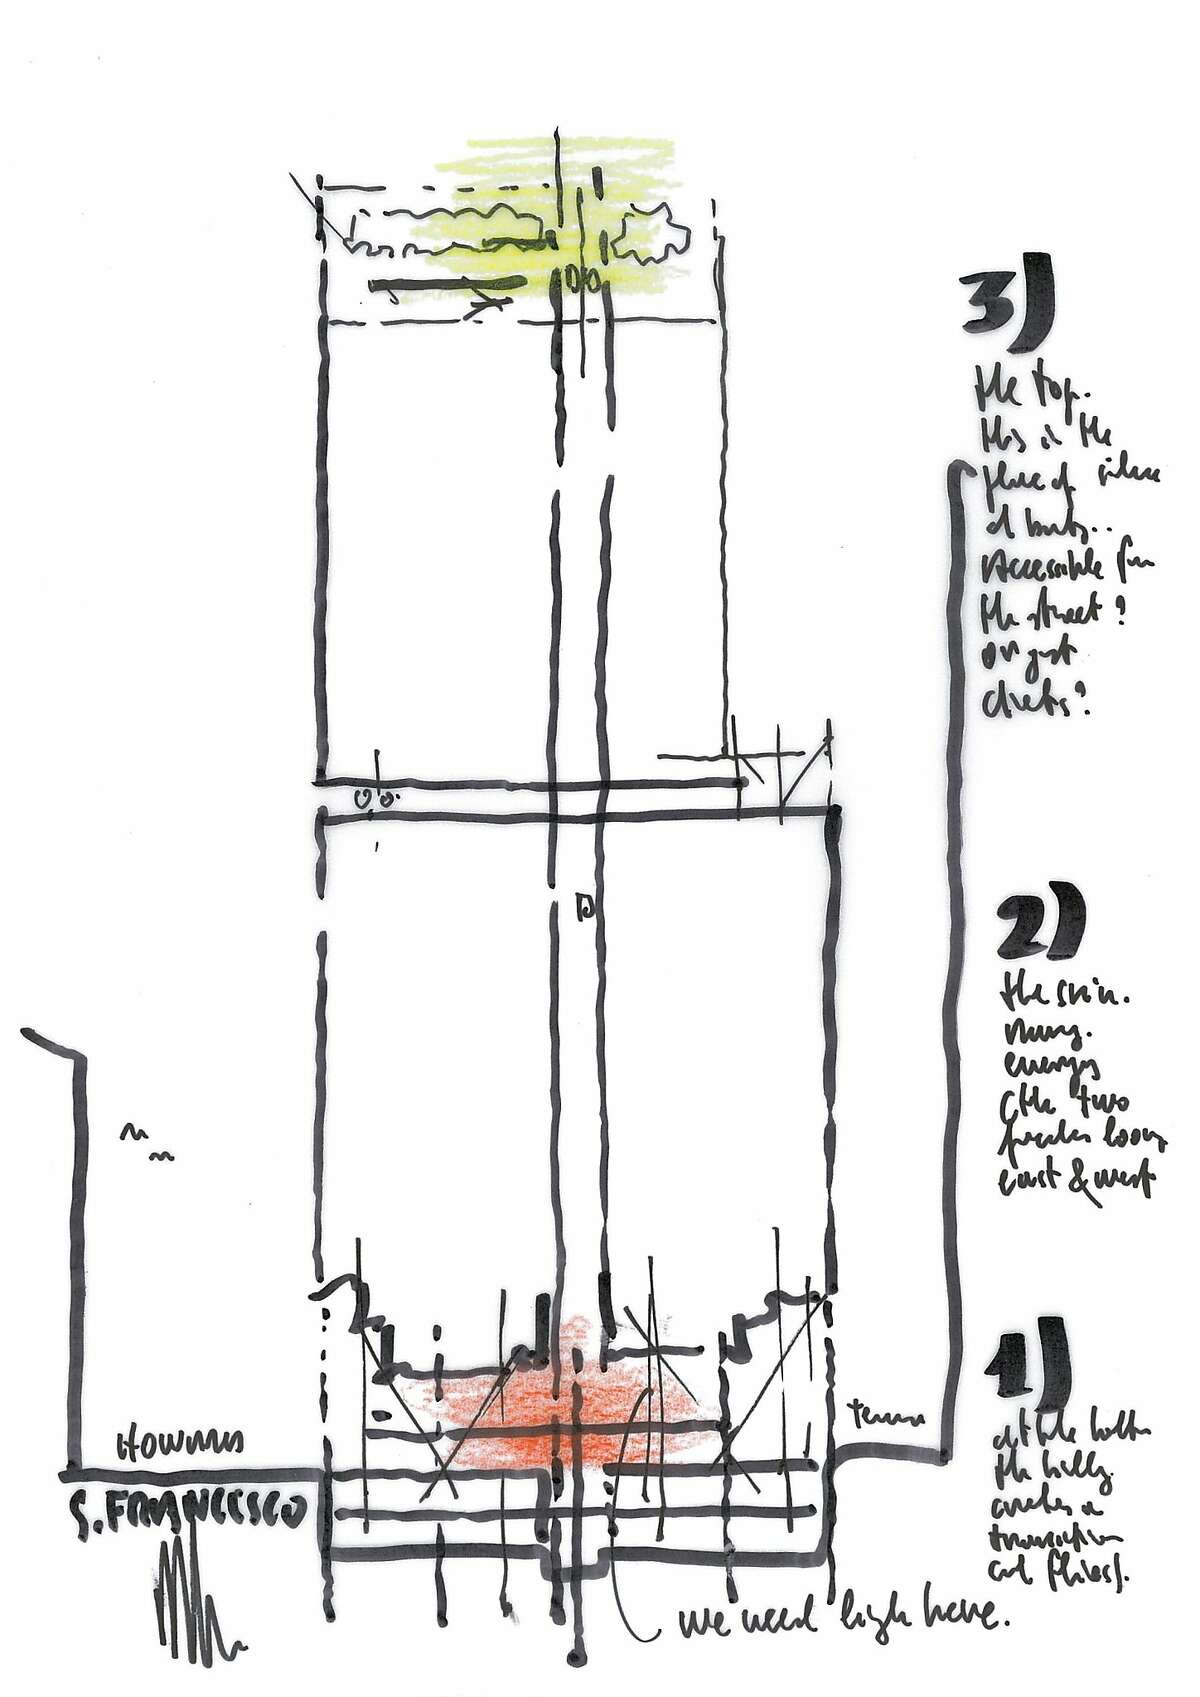 Though still conceptual, Renzo Piano's vision for 555 Howard St. in San Francisco is a simple 37-story slab wrapped in two layers of glass to reduce heat and glare inside. Inside would be a hotel and condominiums.